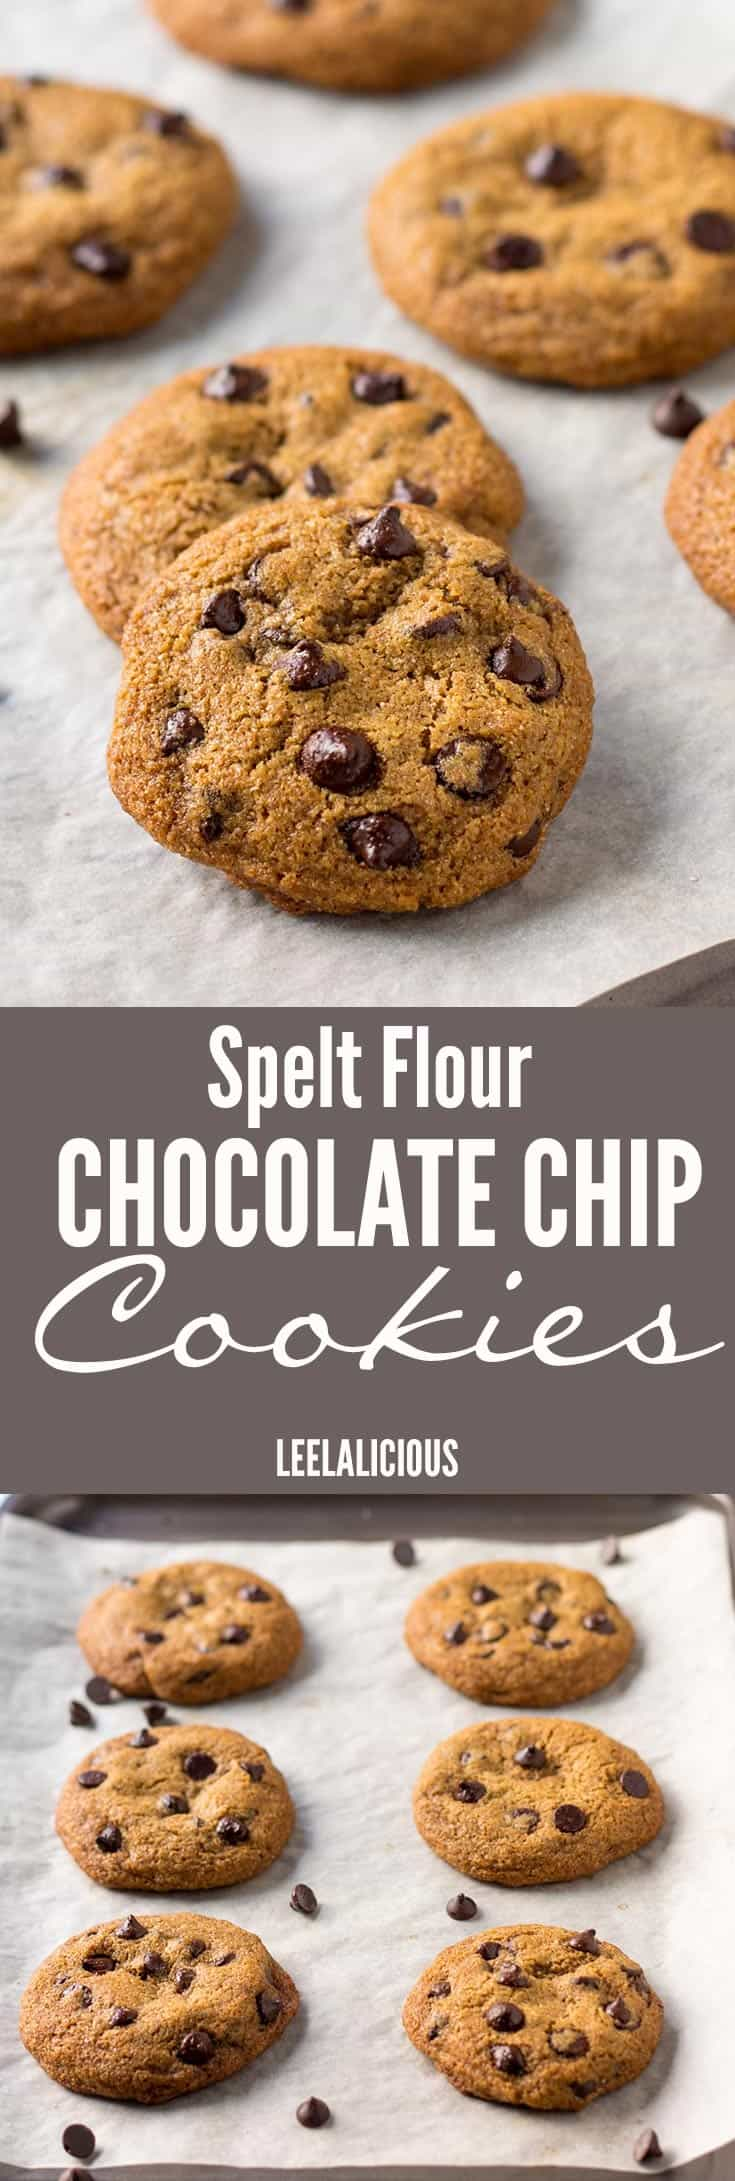 Clean Eating Spelt Chocolate Chip Cookies – LeelaLicious